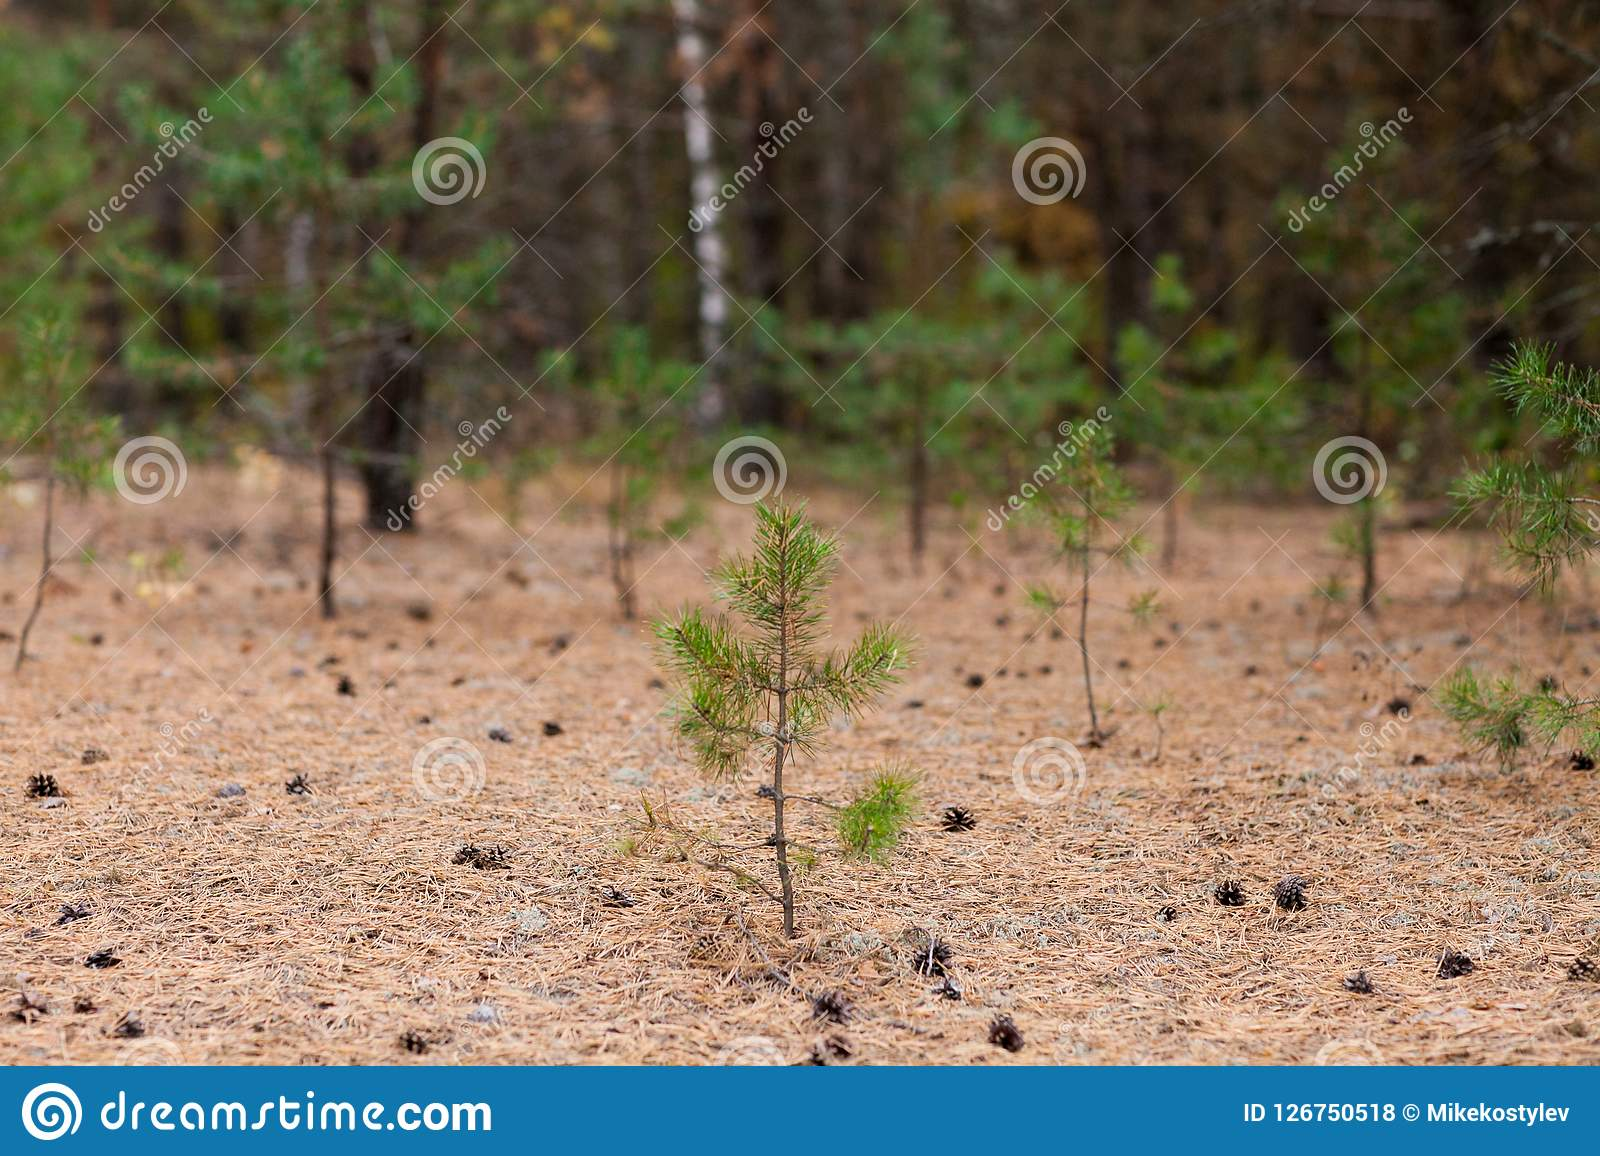 Little pine tree with cones at ground